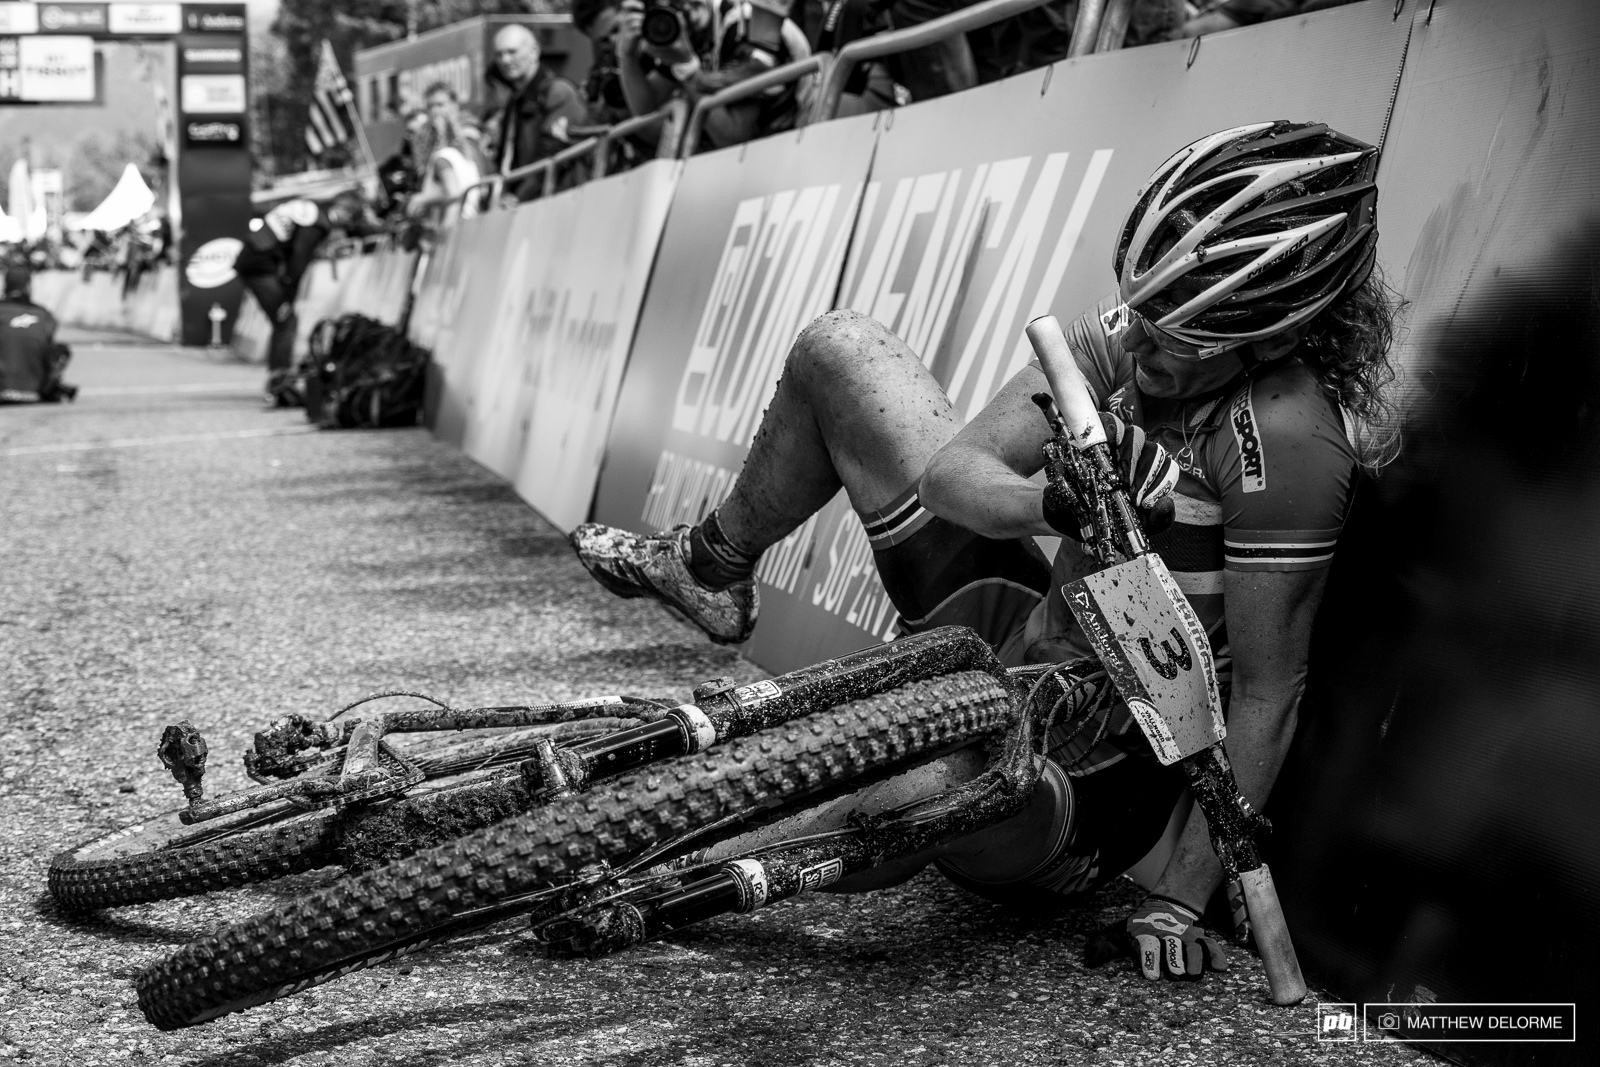 Gunn Rita finished fourth and collapsed after she crossed the line.